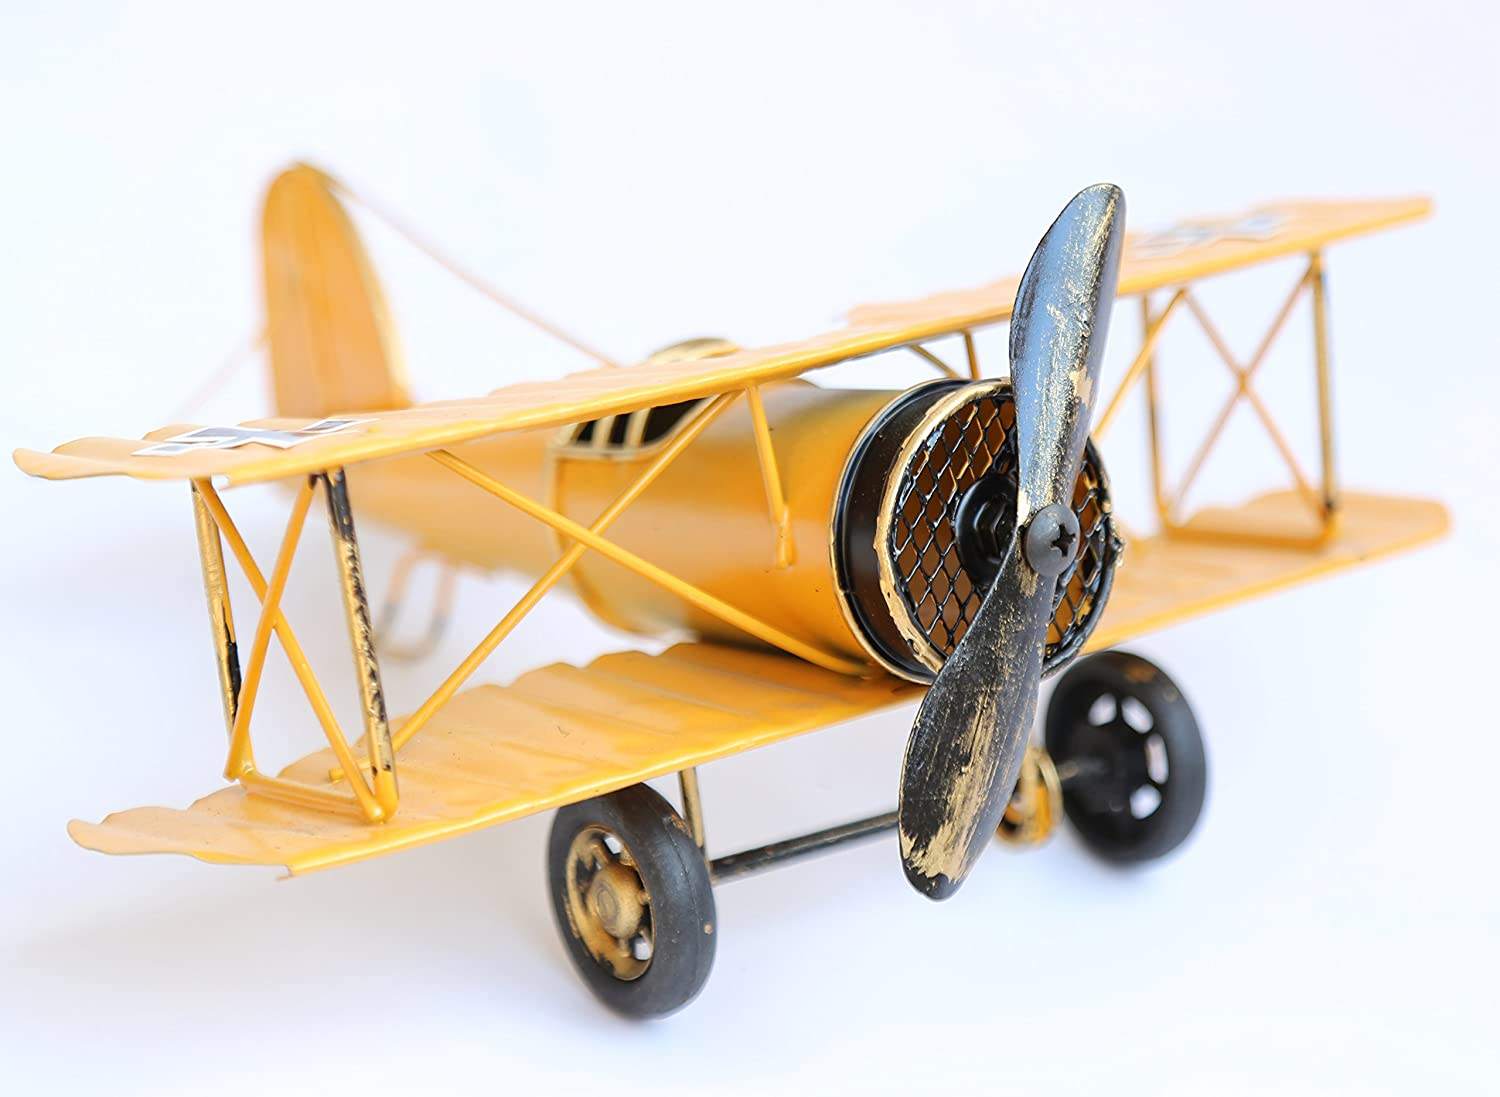 Amazon.com: Berry President® Vintage / Retro Wrought Iron Aircraft ...